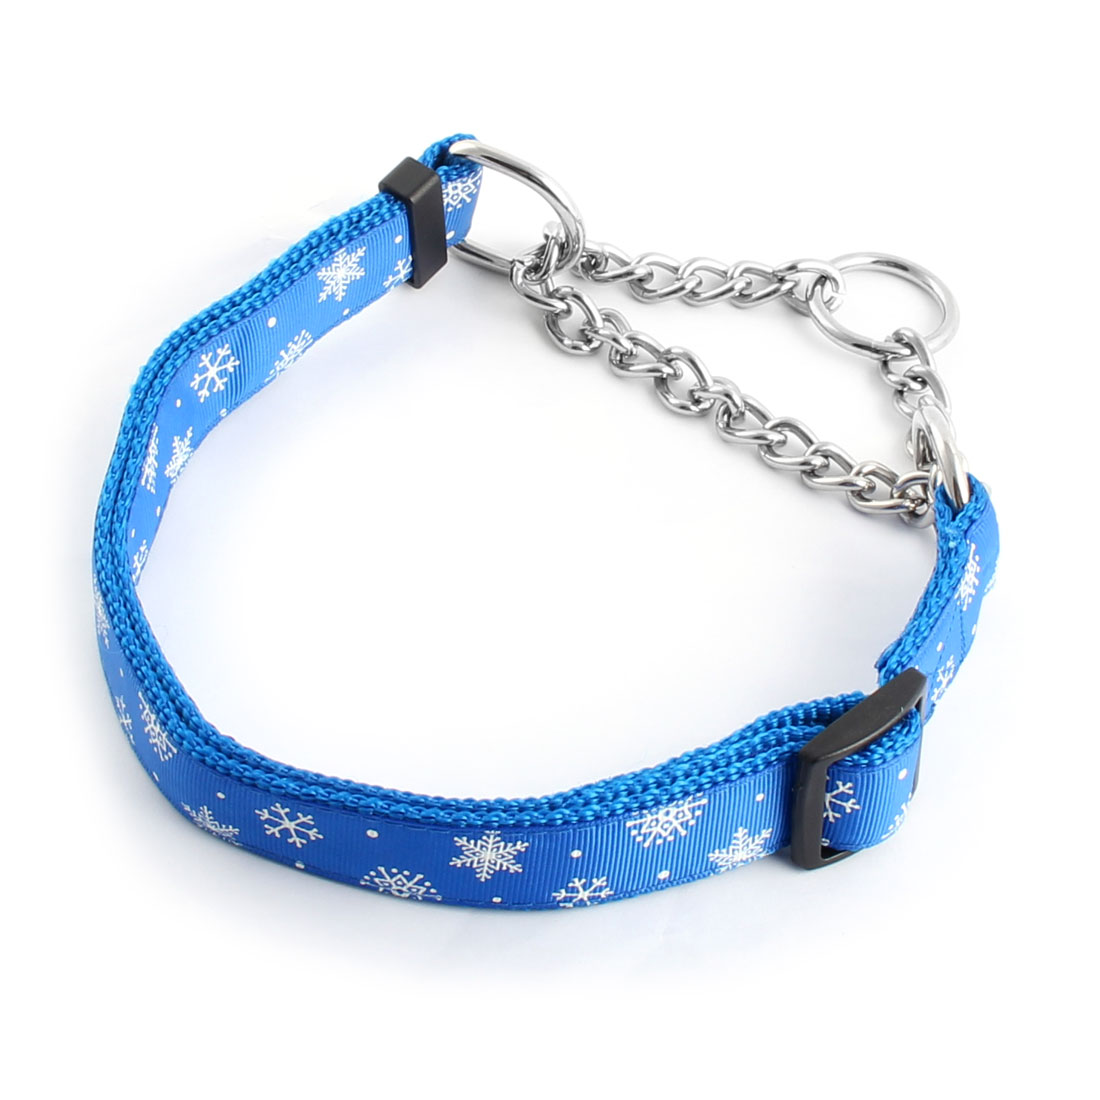 Pet Dog Outdoor Nylon Rope Snowflake Pattern Adjustable Neck Chain Leash Blue